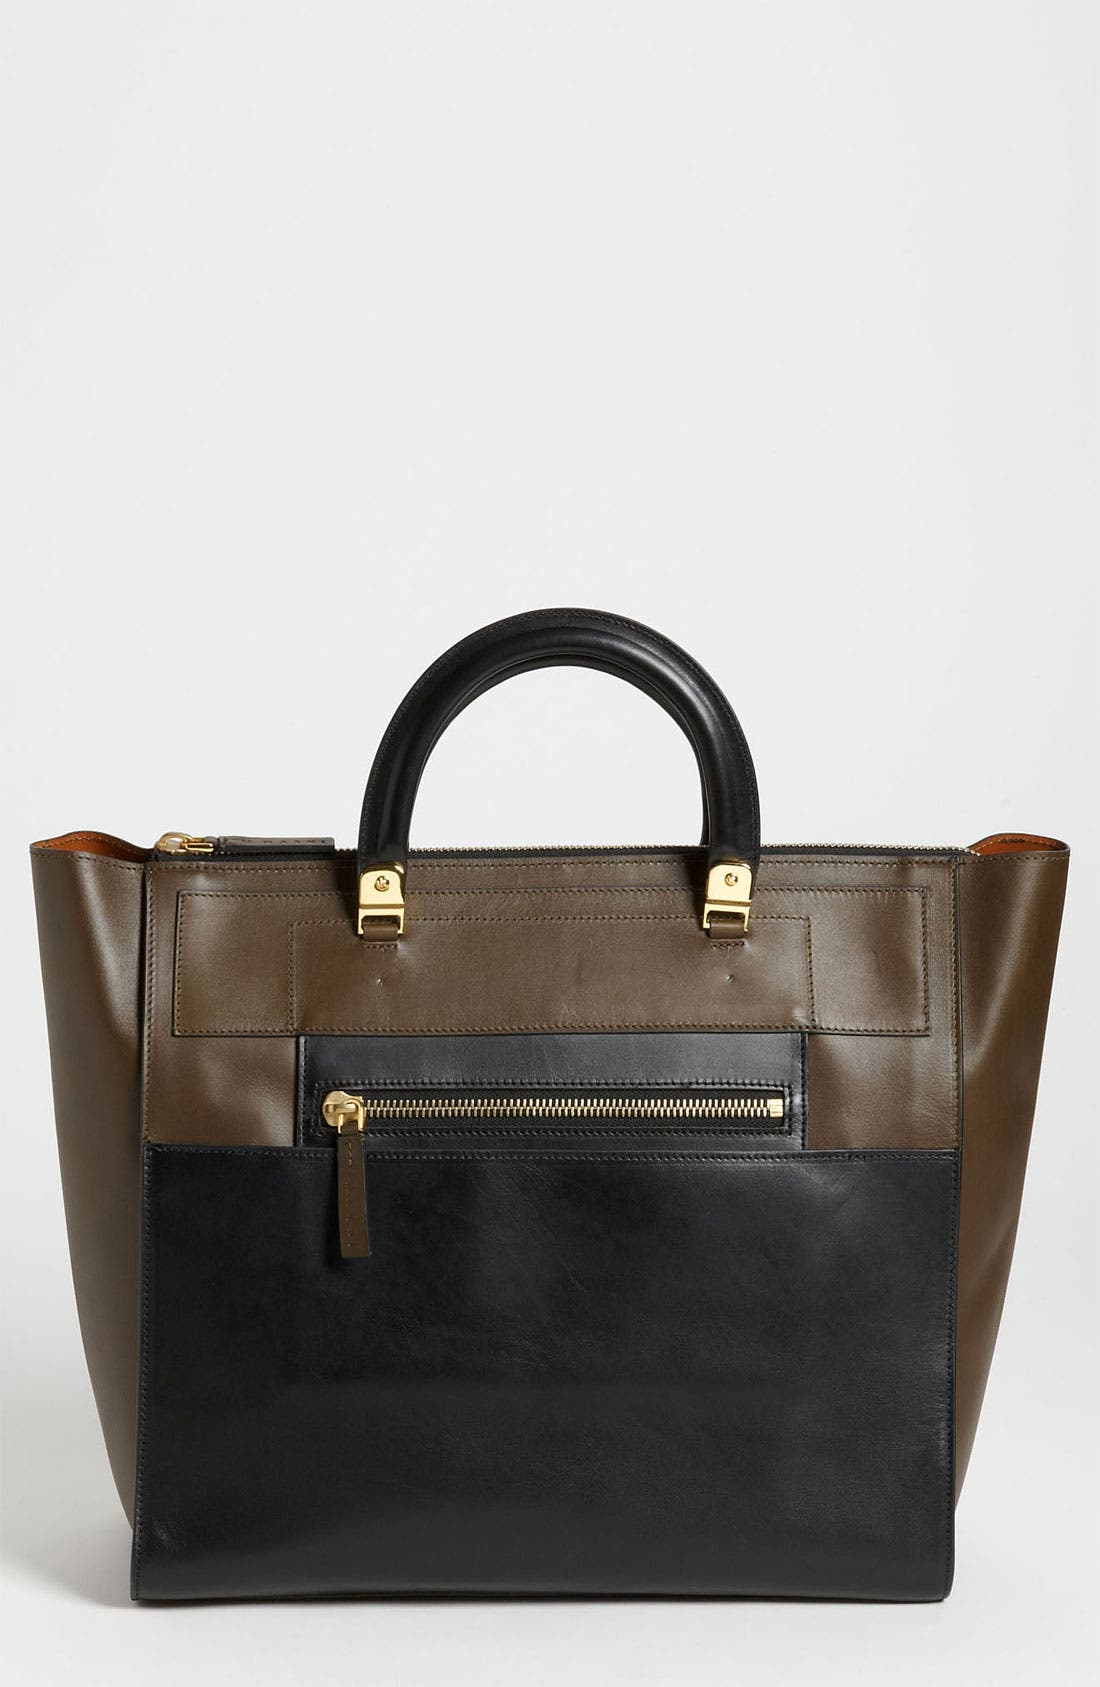 Main Image - Marni 'Large' Leather Tote